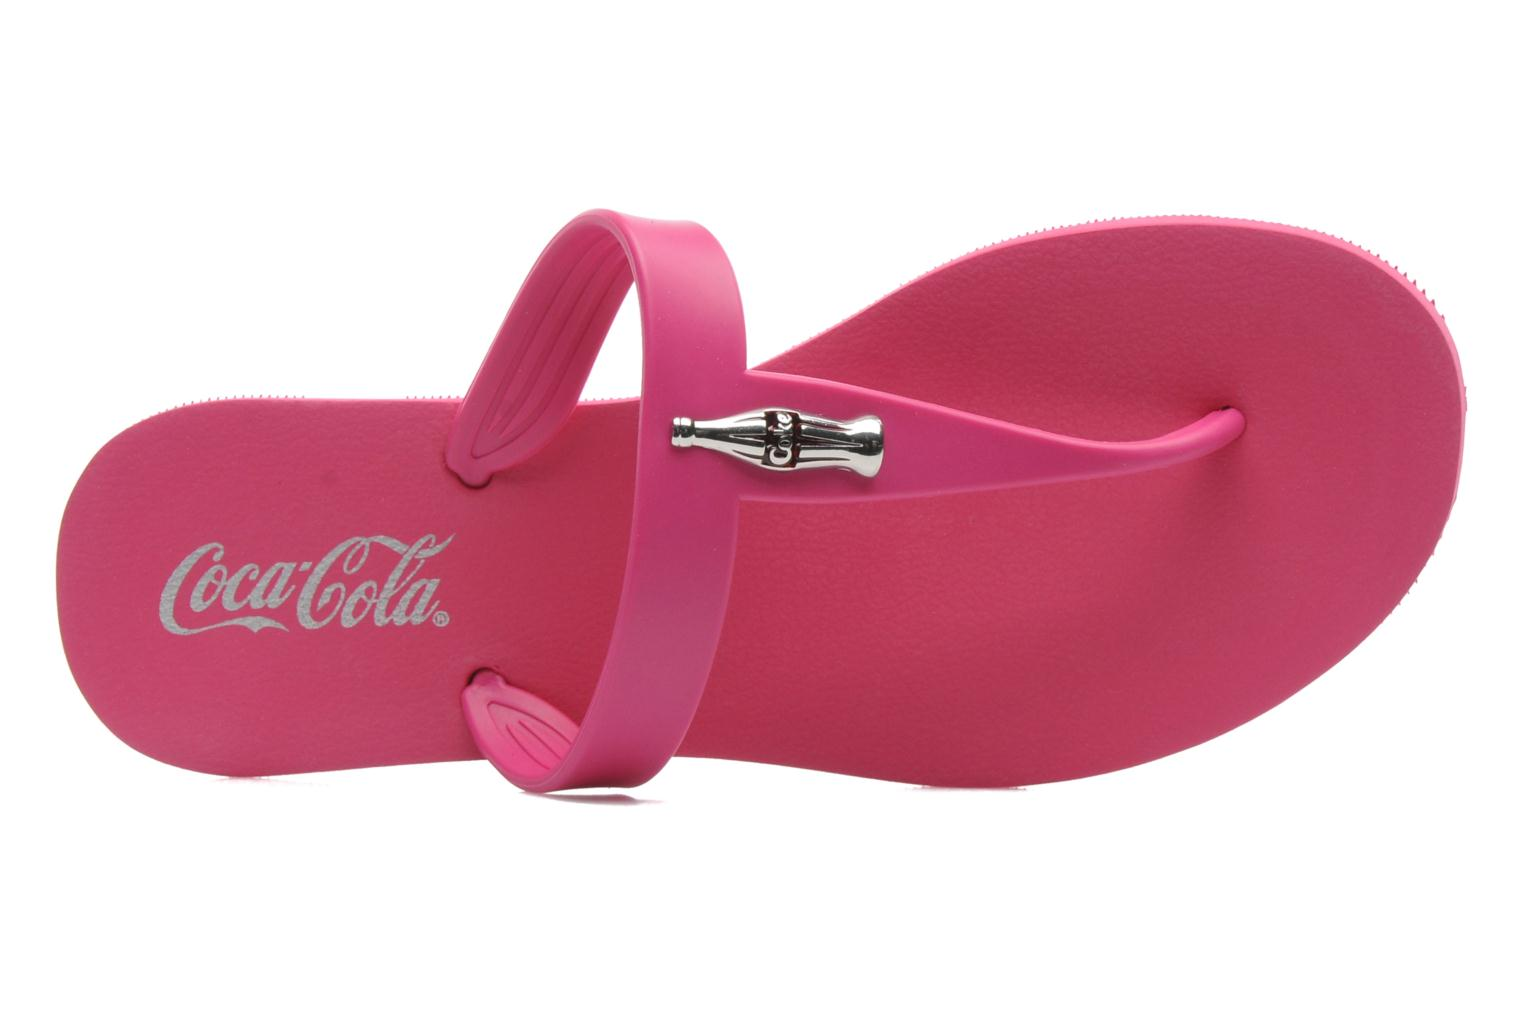 Flip flops Coca-cola shoes Fashion Bottle Pink view from the left